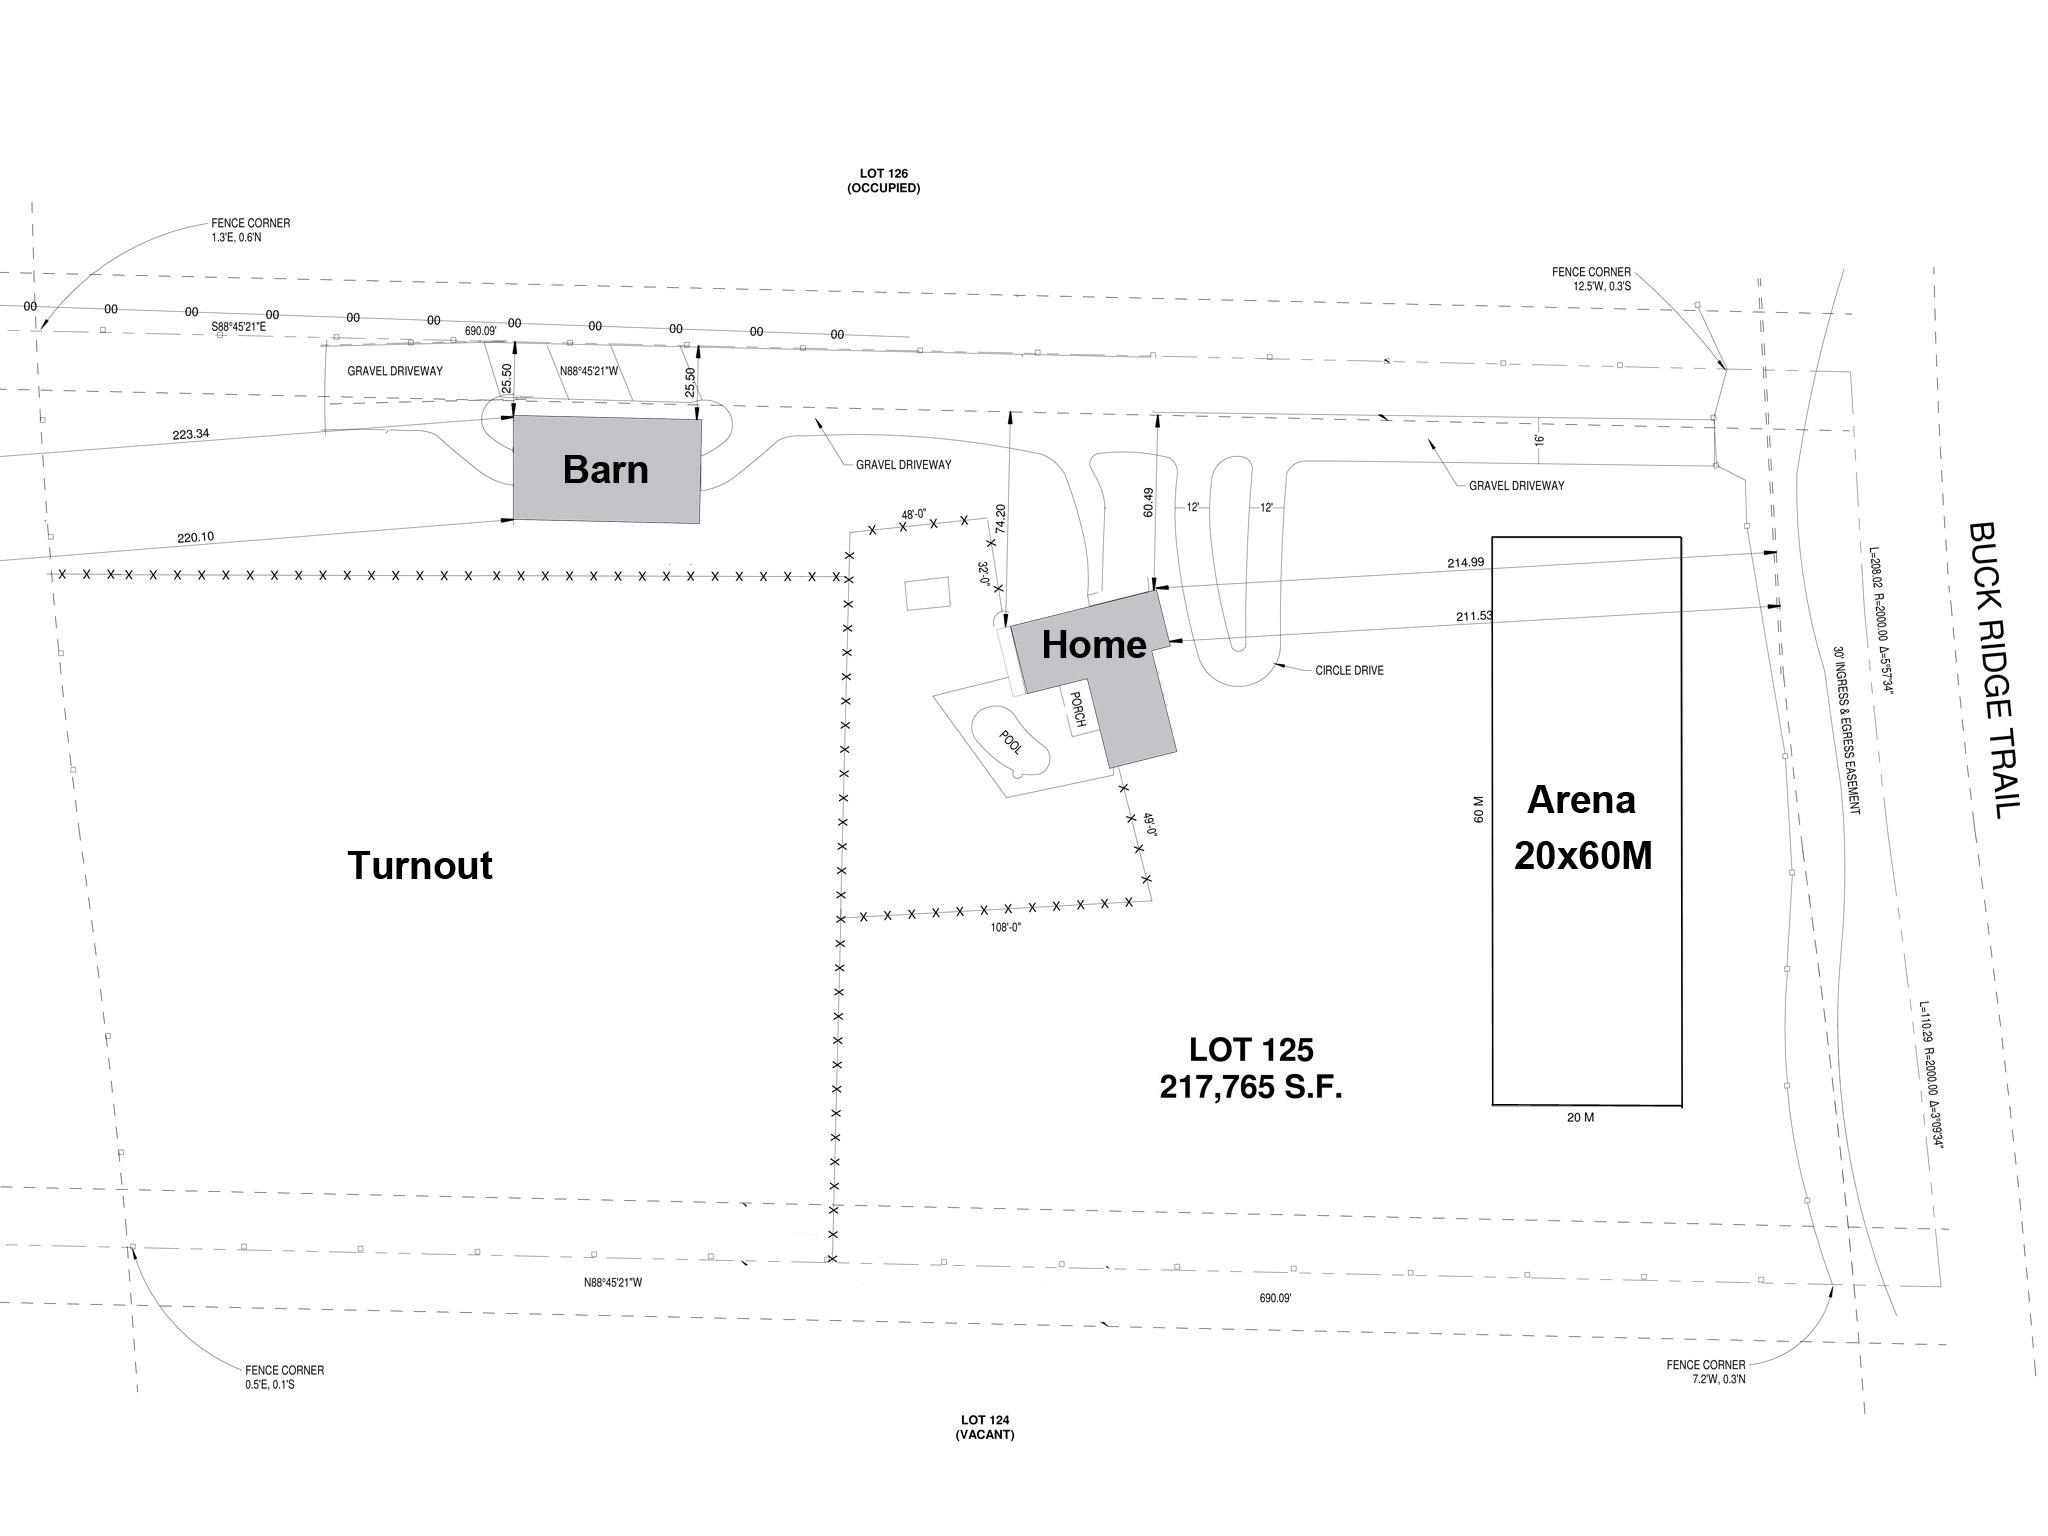 Site plan with arena for listing